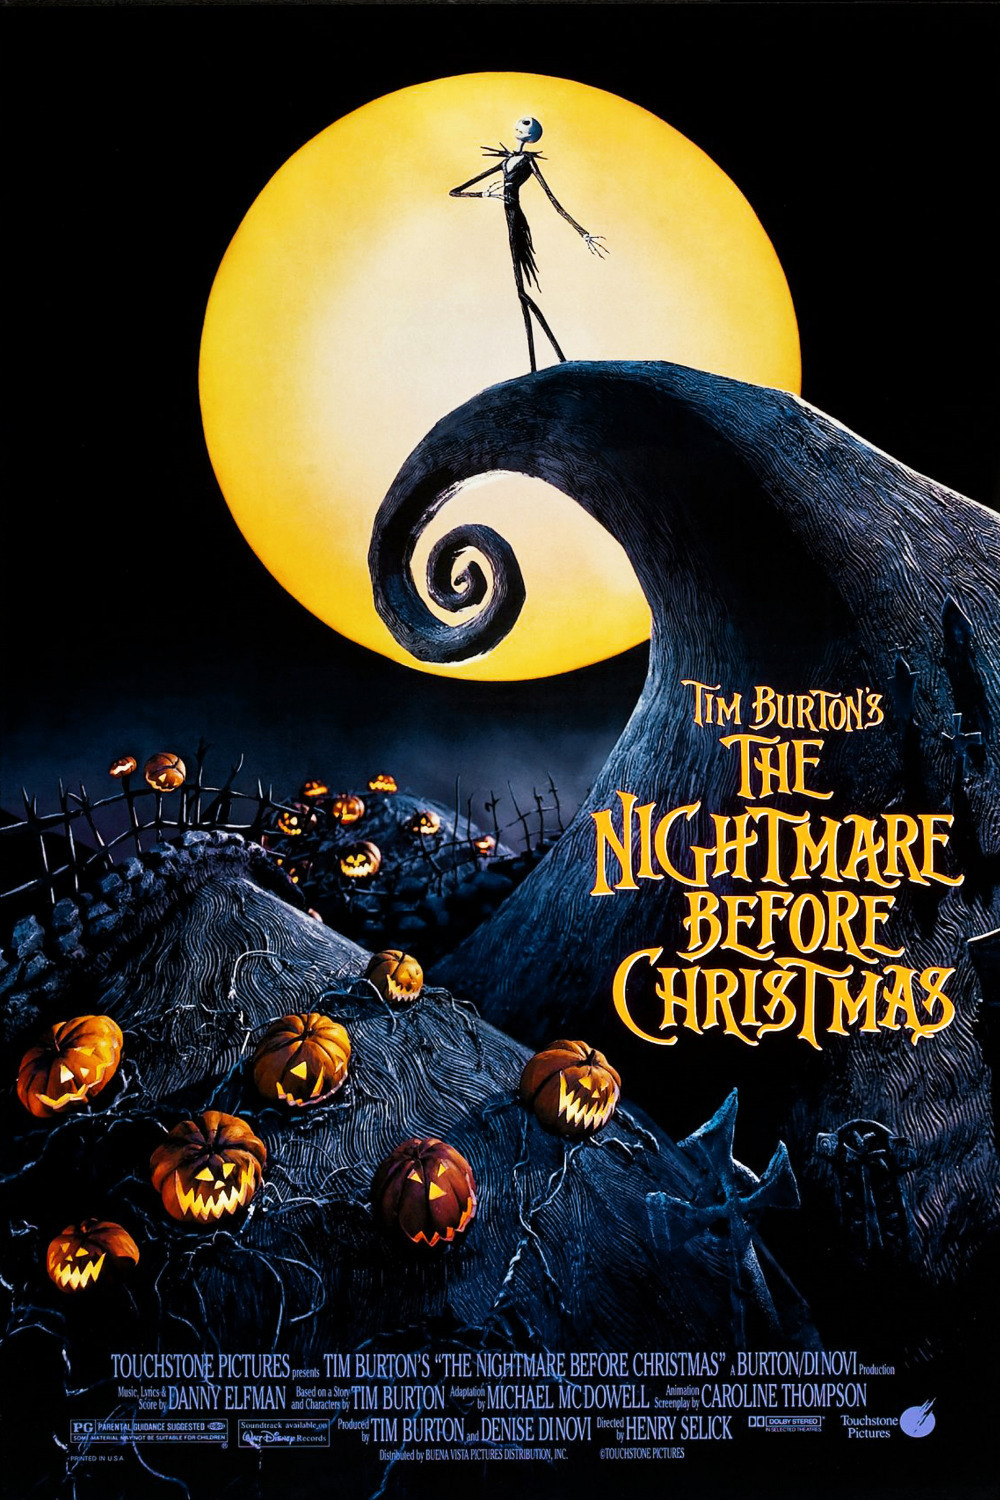 Amazon.co.uk: Watch The Nightmare Before Christmas | Prime Video